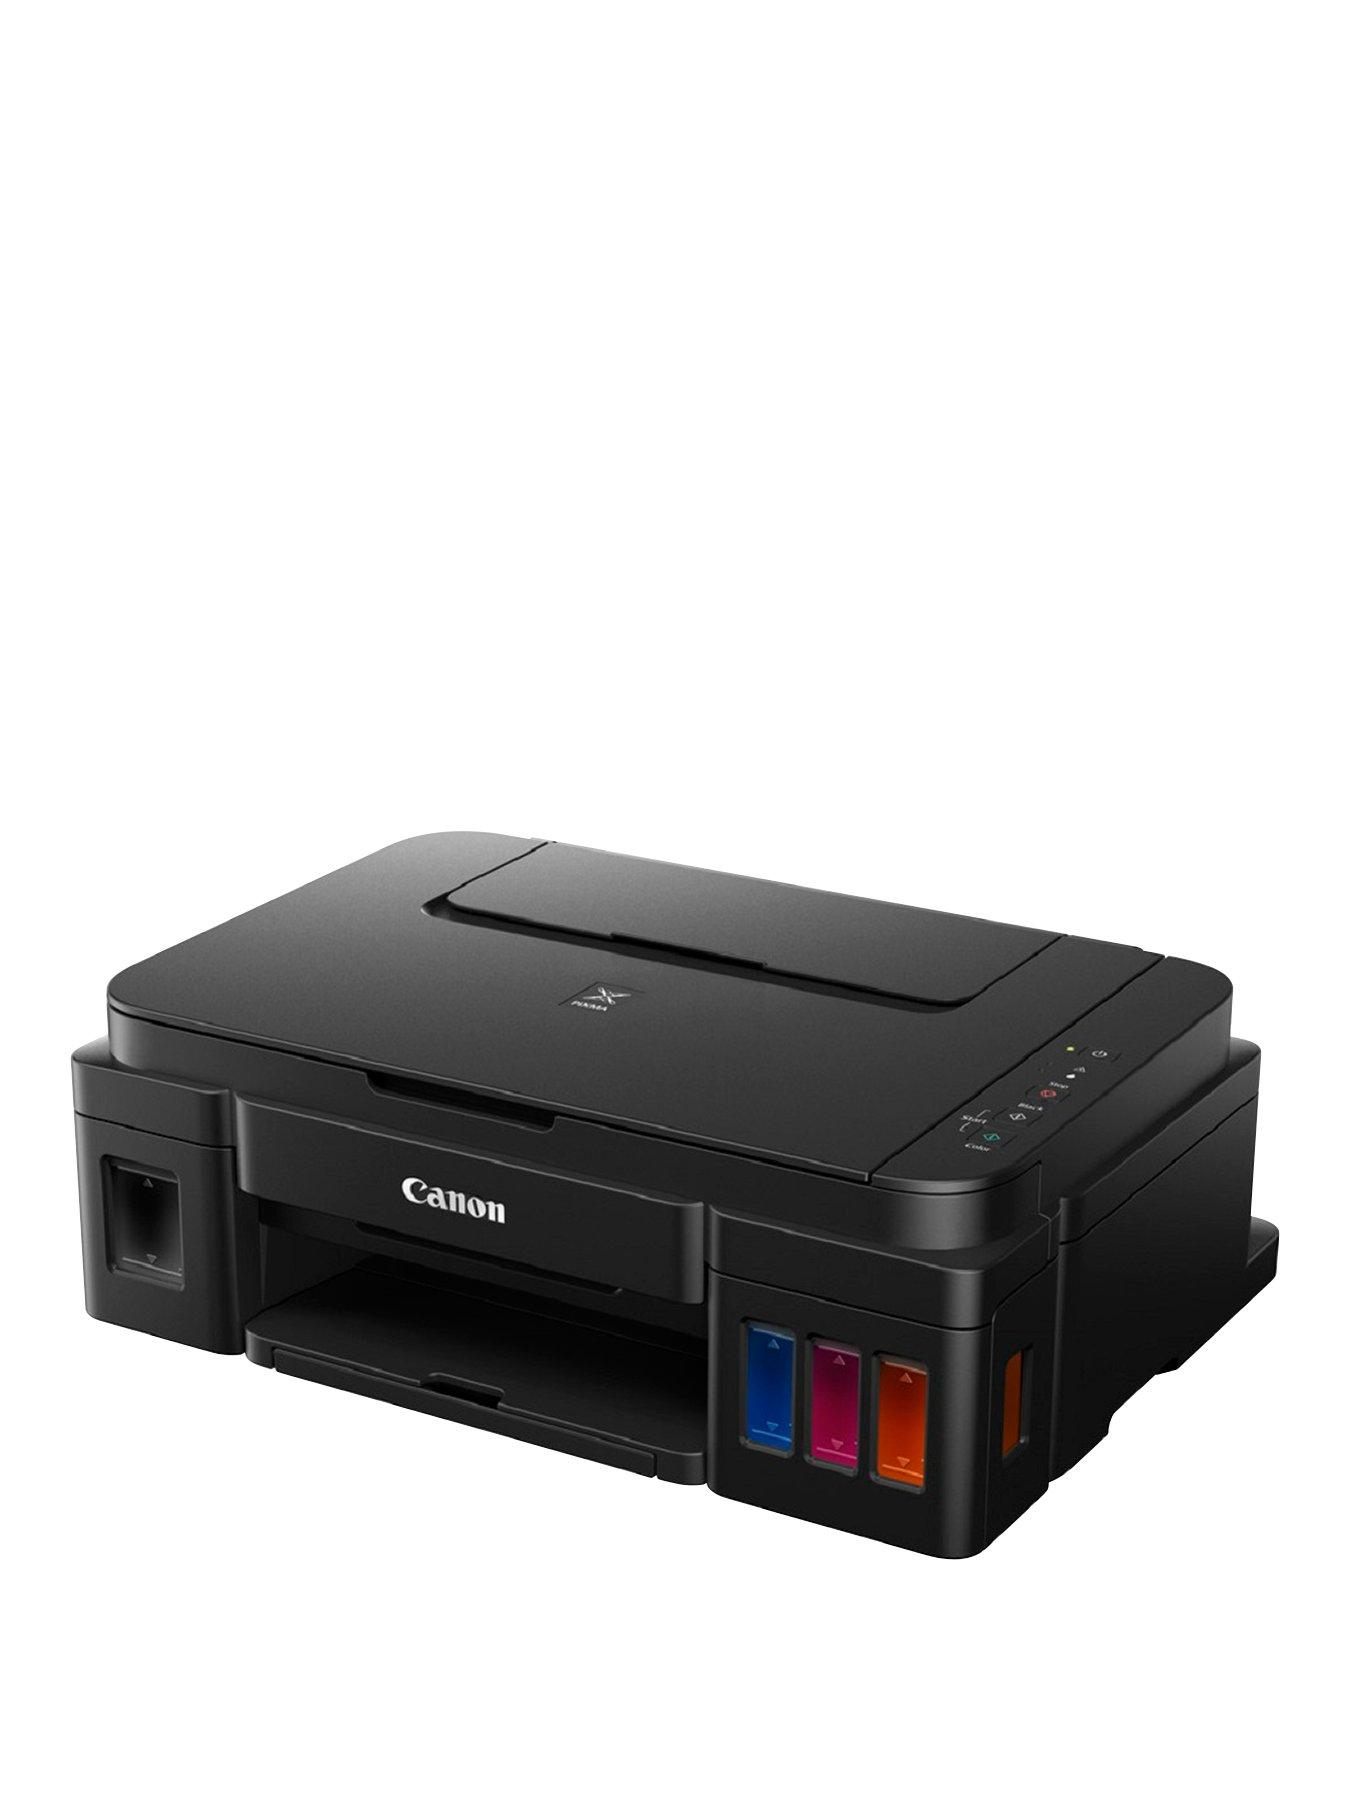 Canon PIXMA G2501 colour multifunction refillable ink printer